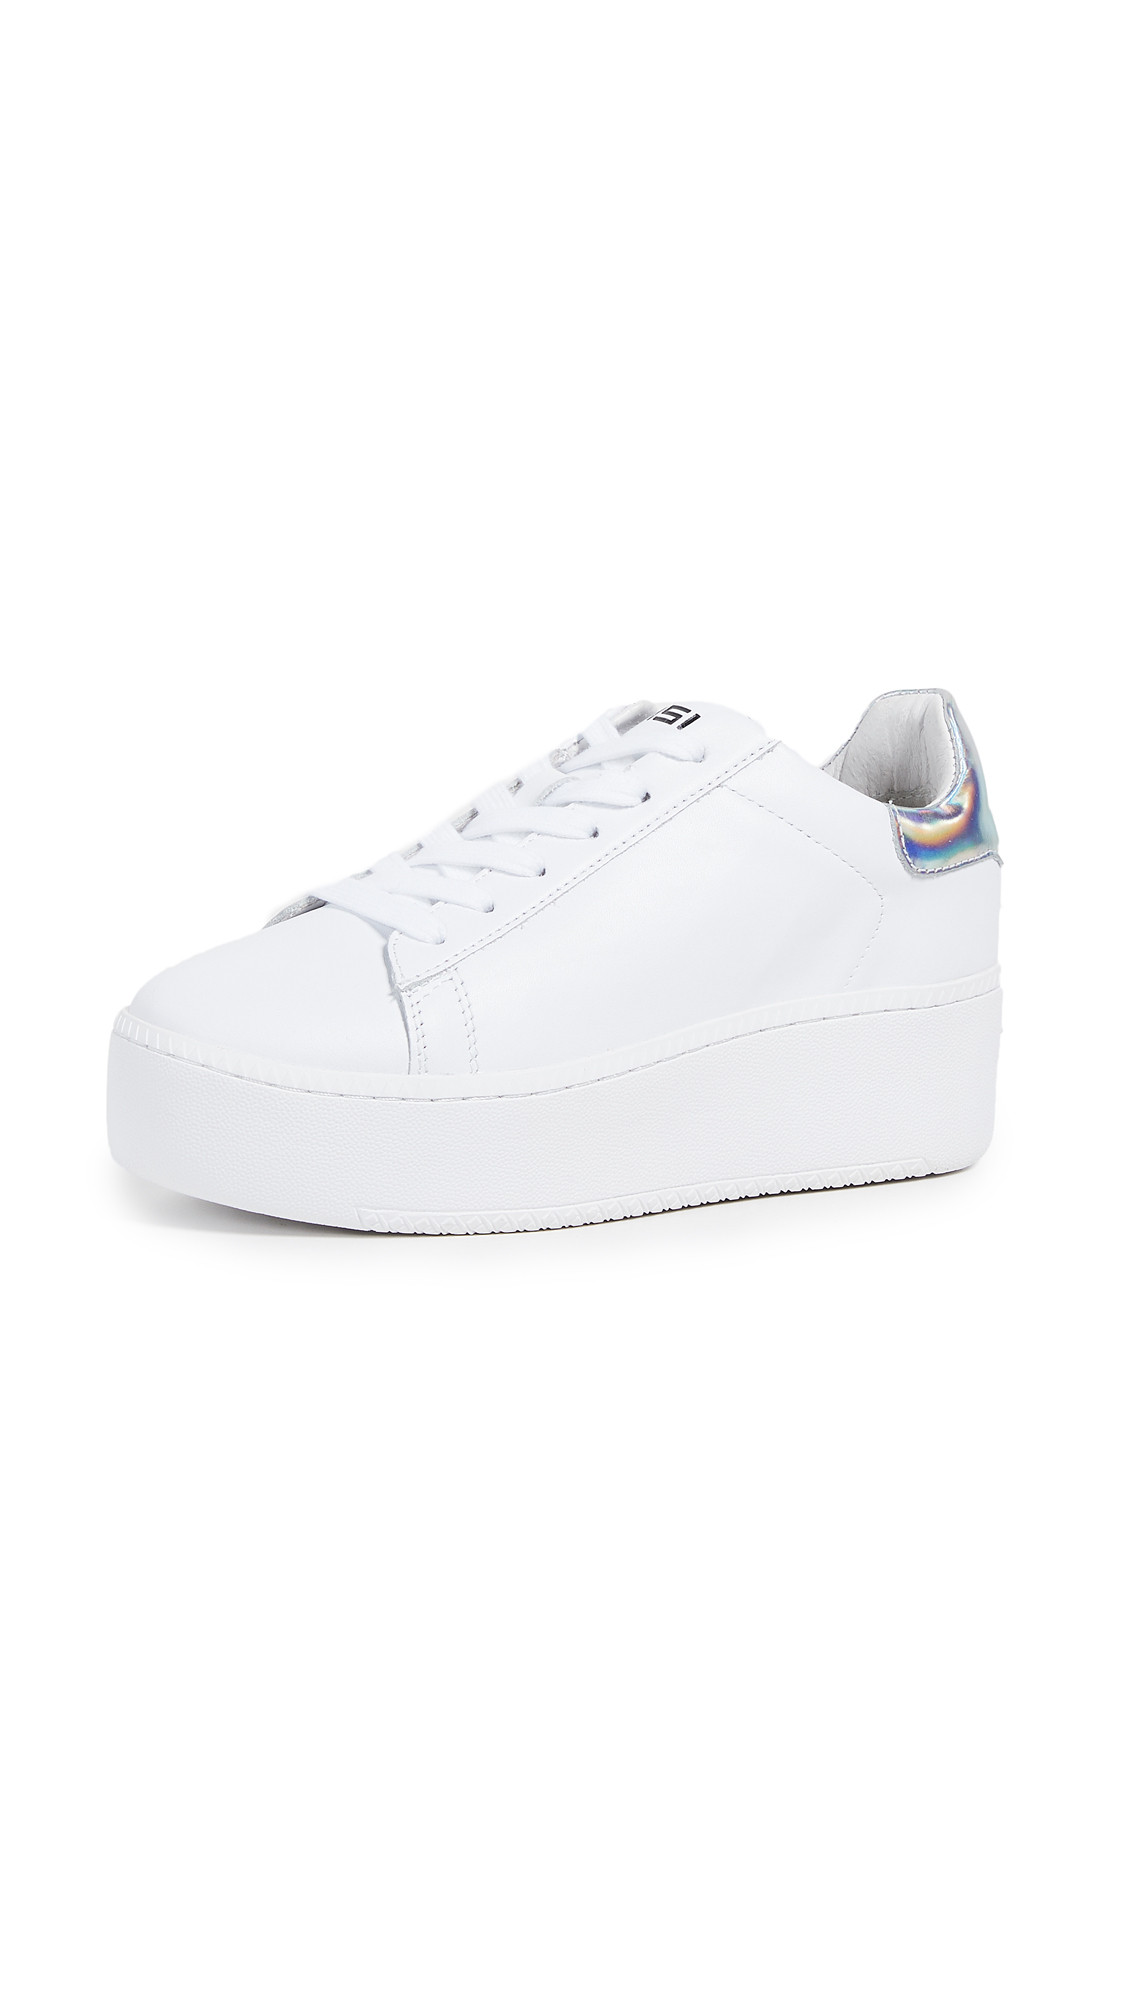 Ash Cult Platform Sneakers - White/Rainbow Silver